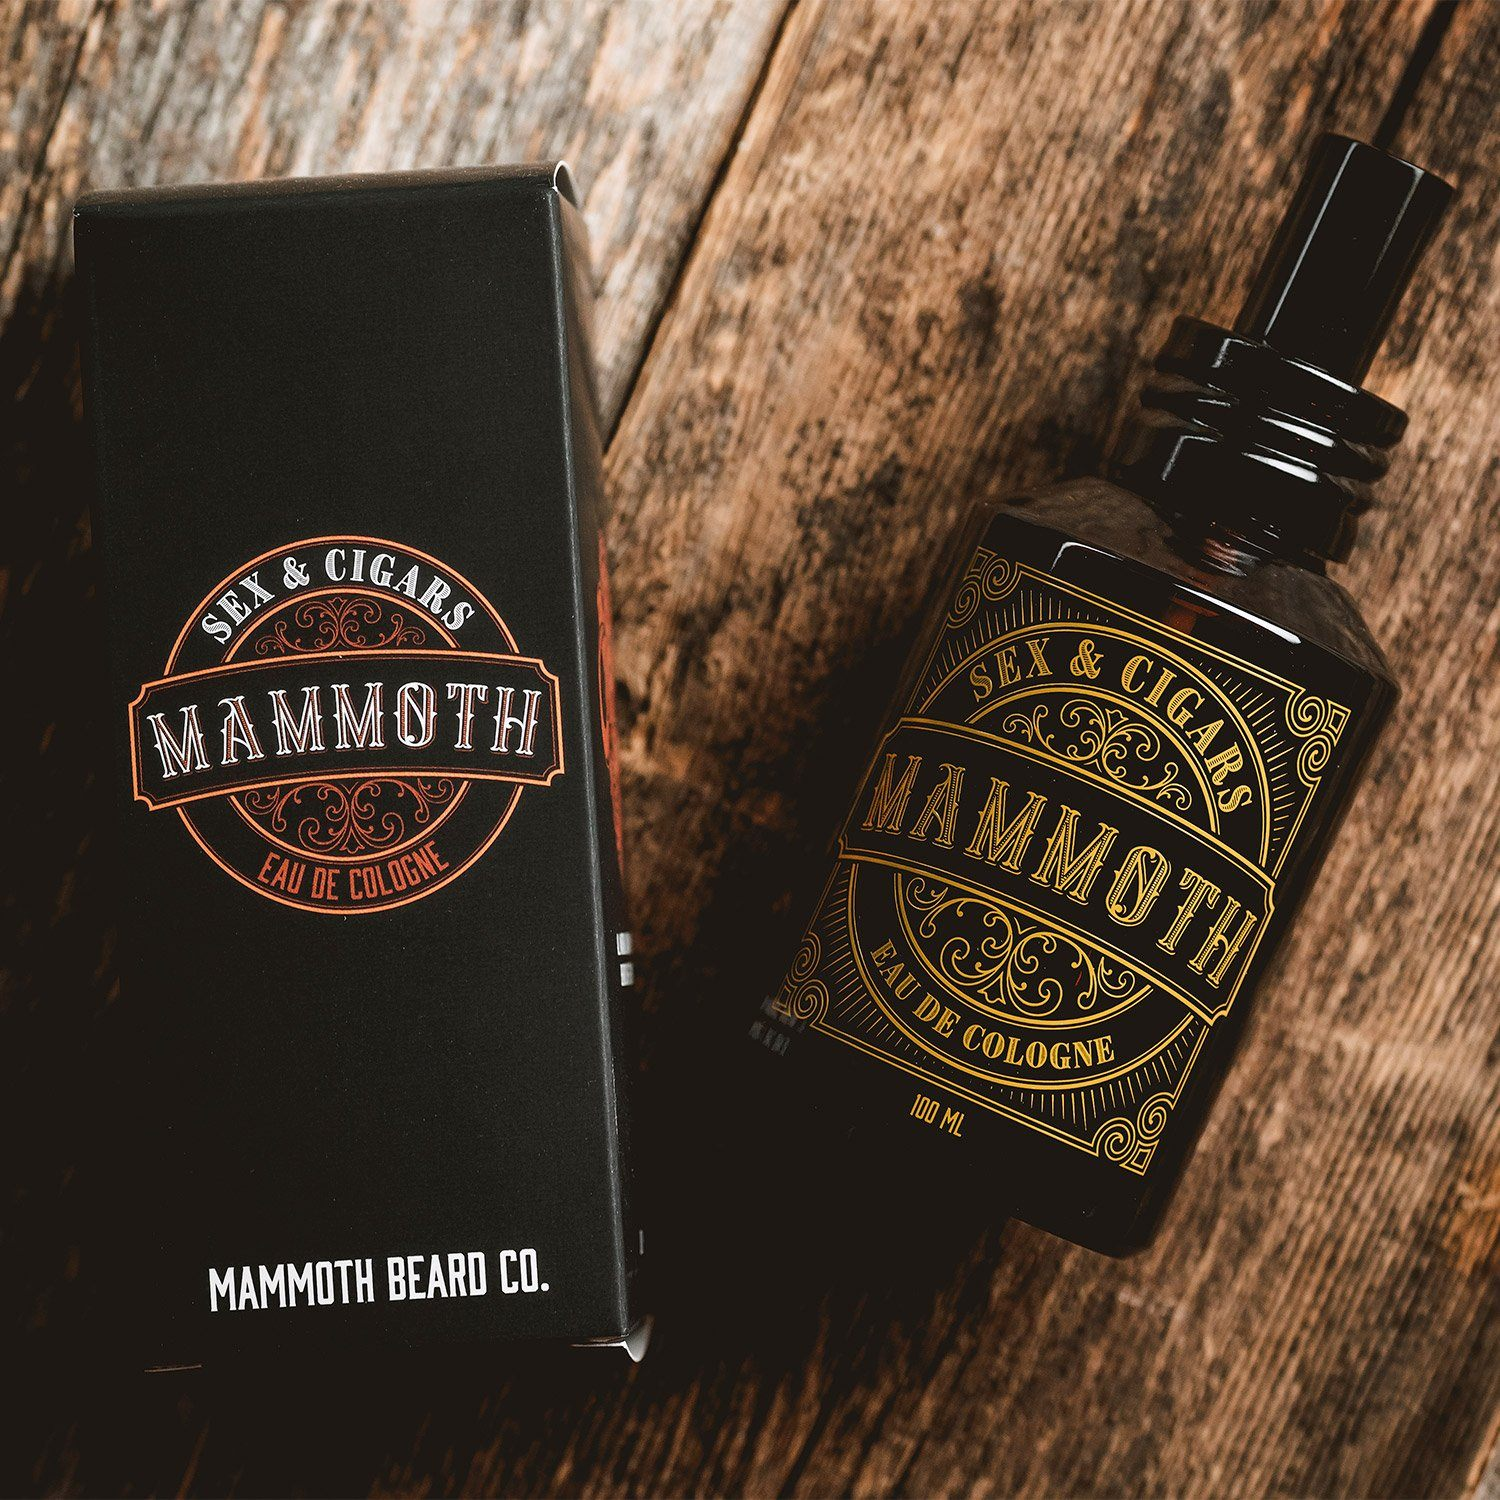 Mammoth Beard Co. Sex & Cigars Eau de Cologne